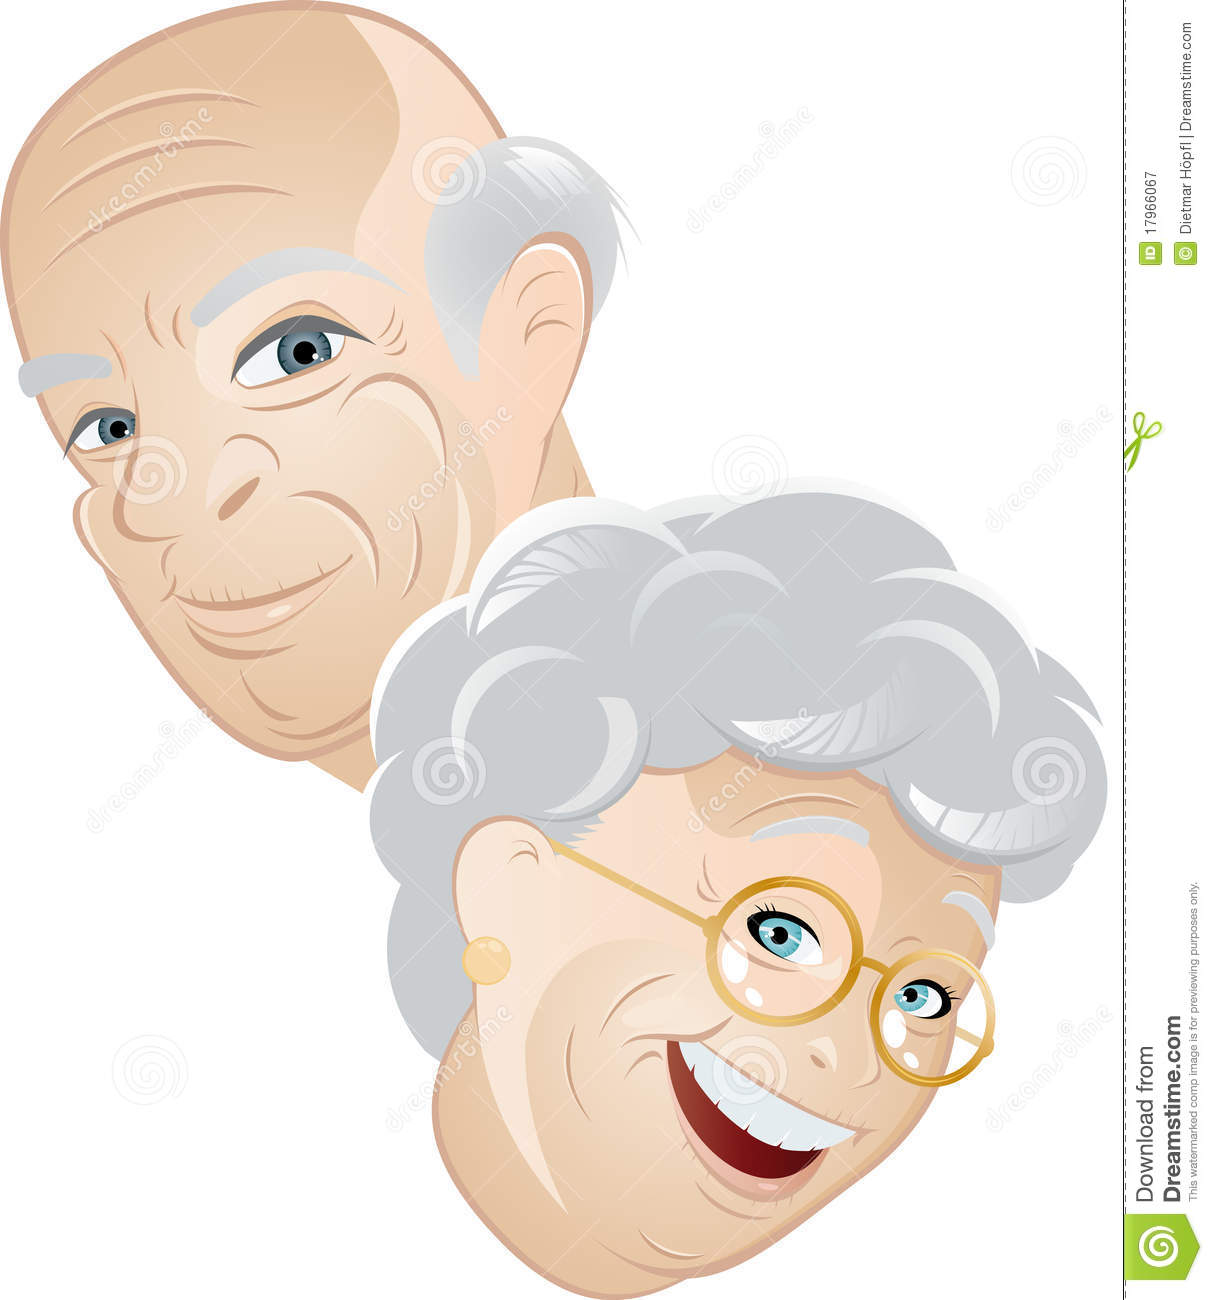 Senior Man And Woman Royalty Free Stock Photography - Image: 17966067